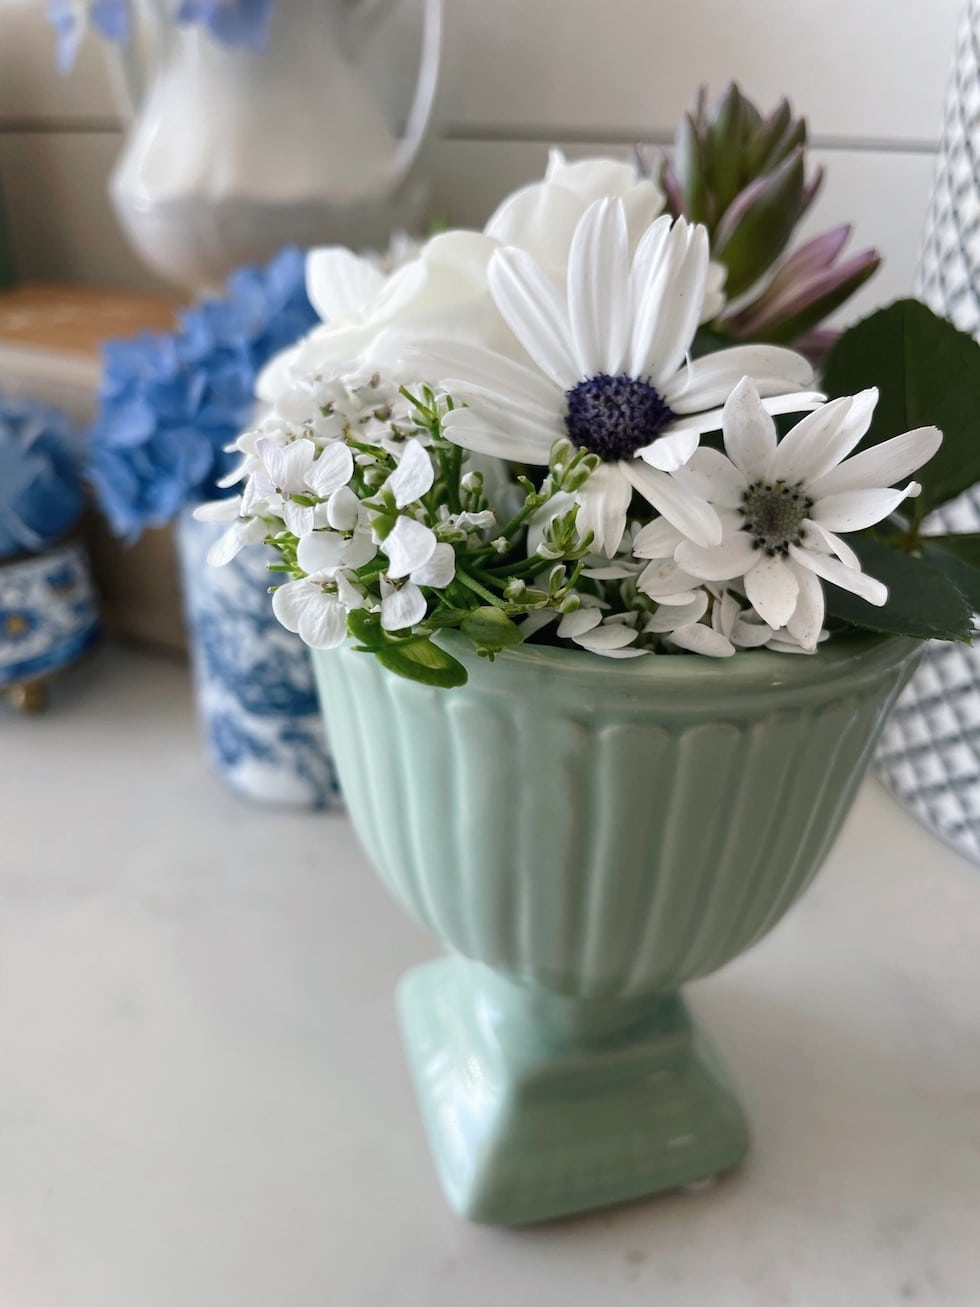 Tiny Bouquets in Small Repurposed Vases